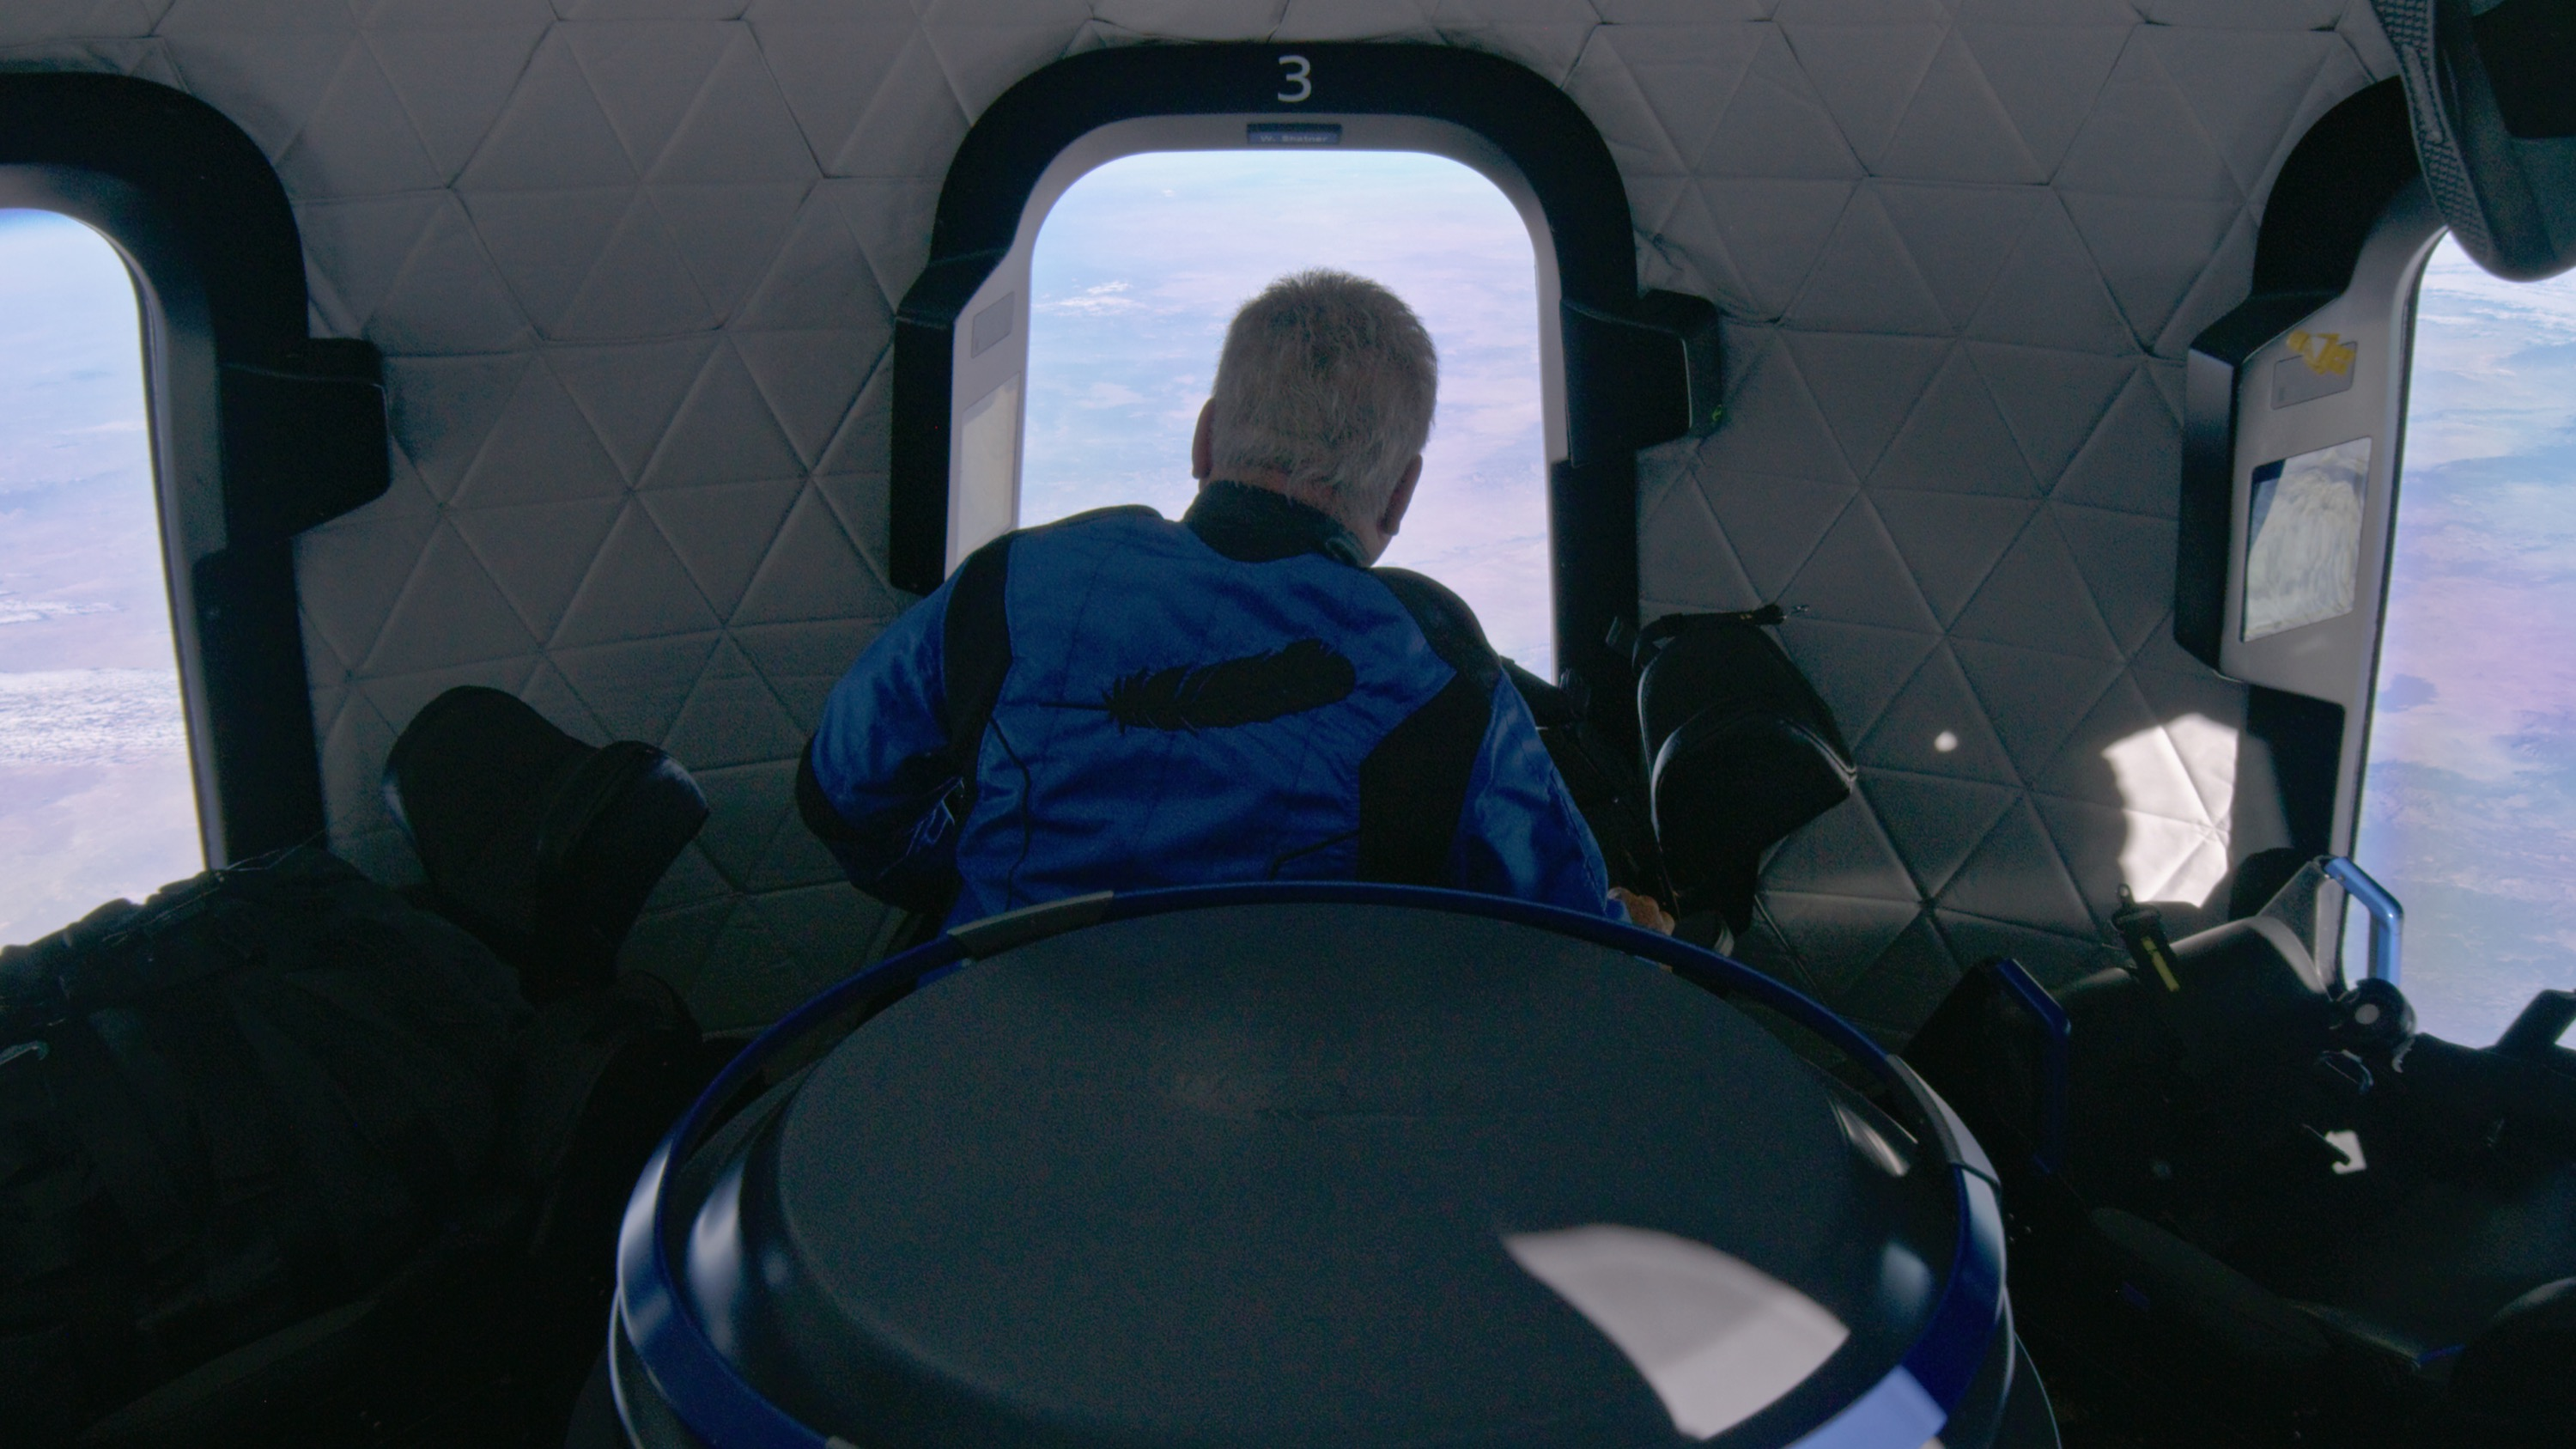 'Something unbelievable': See William Shatner get emotional about trip to space